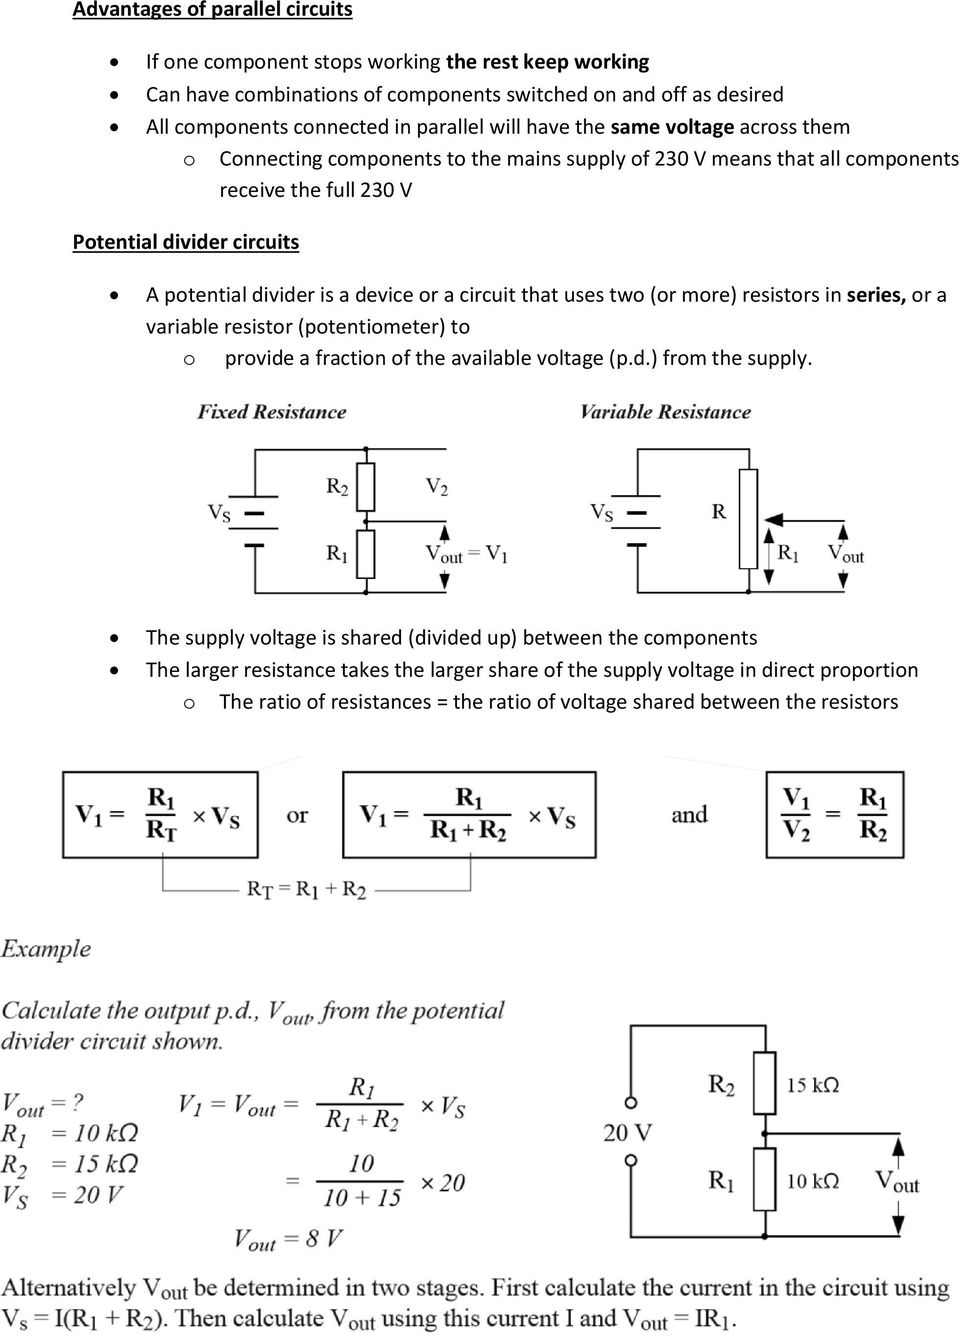 Series And Parallel Circuits Pdf Voltage In A Circuit That Uses Two Or More Resistors Variable Resistor